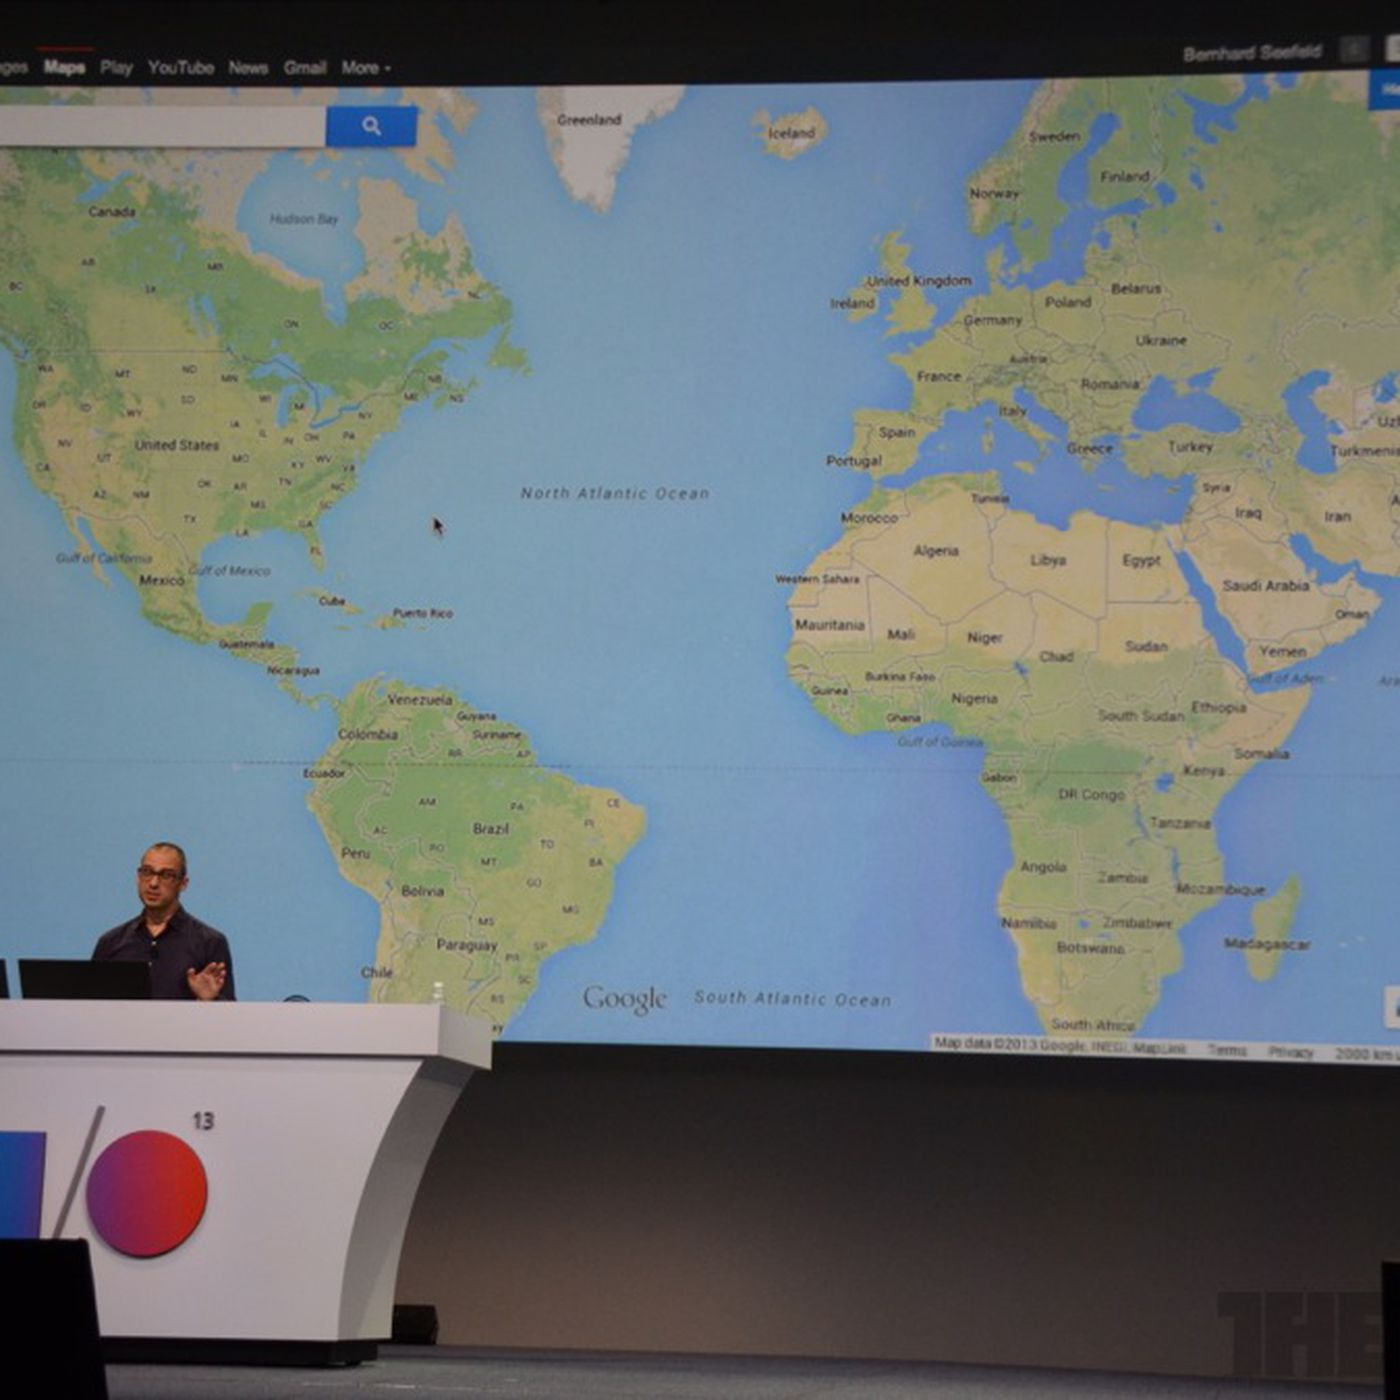 Google Maps integrates Google Earth and Street View in ... on united states aerial maps, google earth search, google earth views from satellite, google earth update, google logo maker, google world globe map, home maps, google earth home, google movies logo, google map in phnom penh, google earth address, googlr maps, google earth haiti map, satellite view maps, google earth map missouri, aerial view maps, google movie maker, google earth ships, google hybrid map,